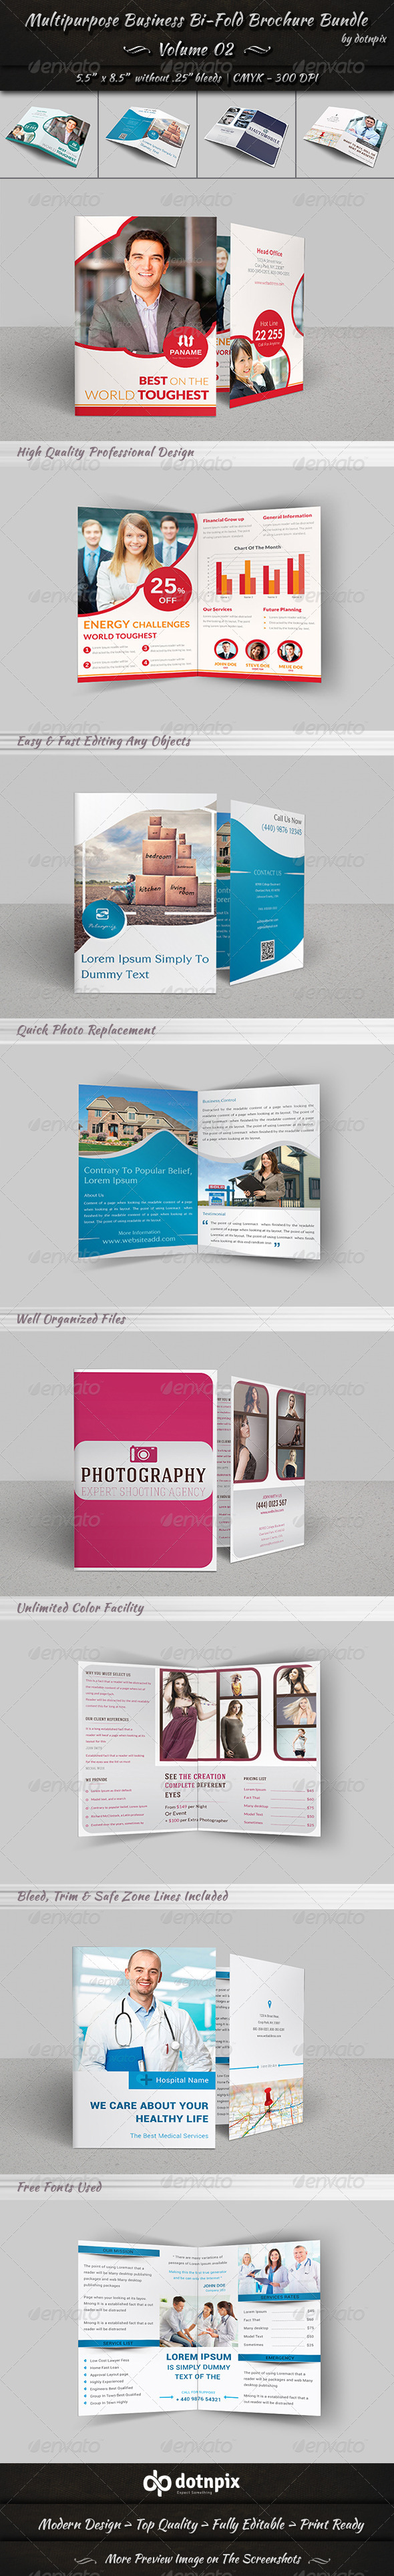 GraphicRiver Multipurpose Business Bi-Fold Brochure Bundle v2 8202633